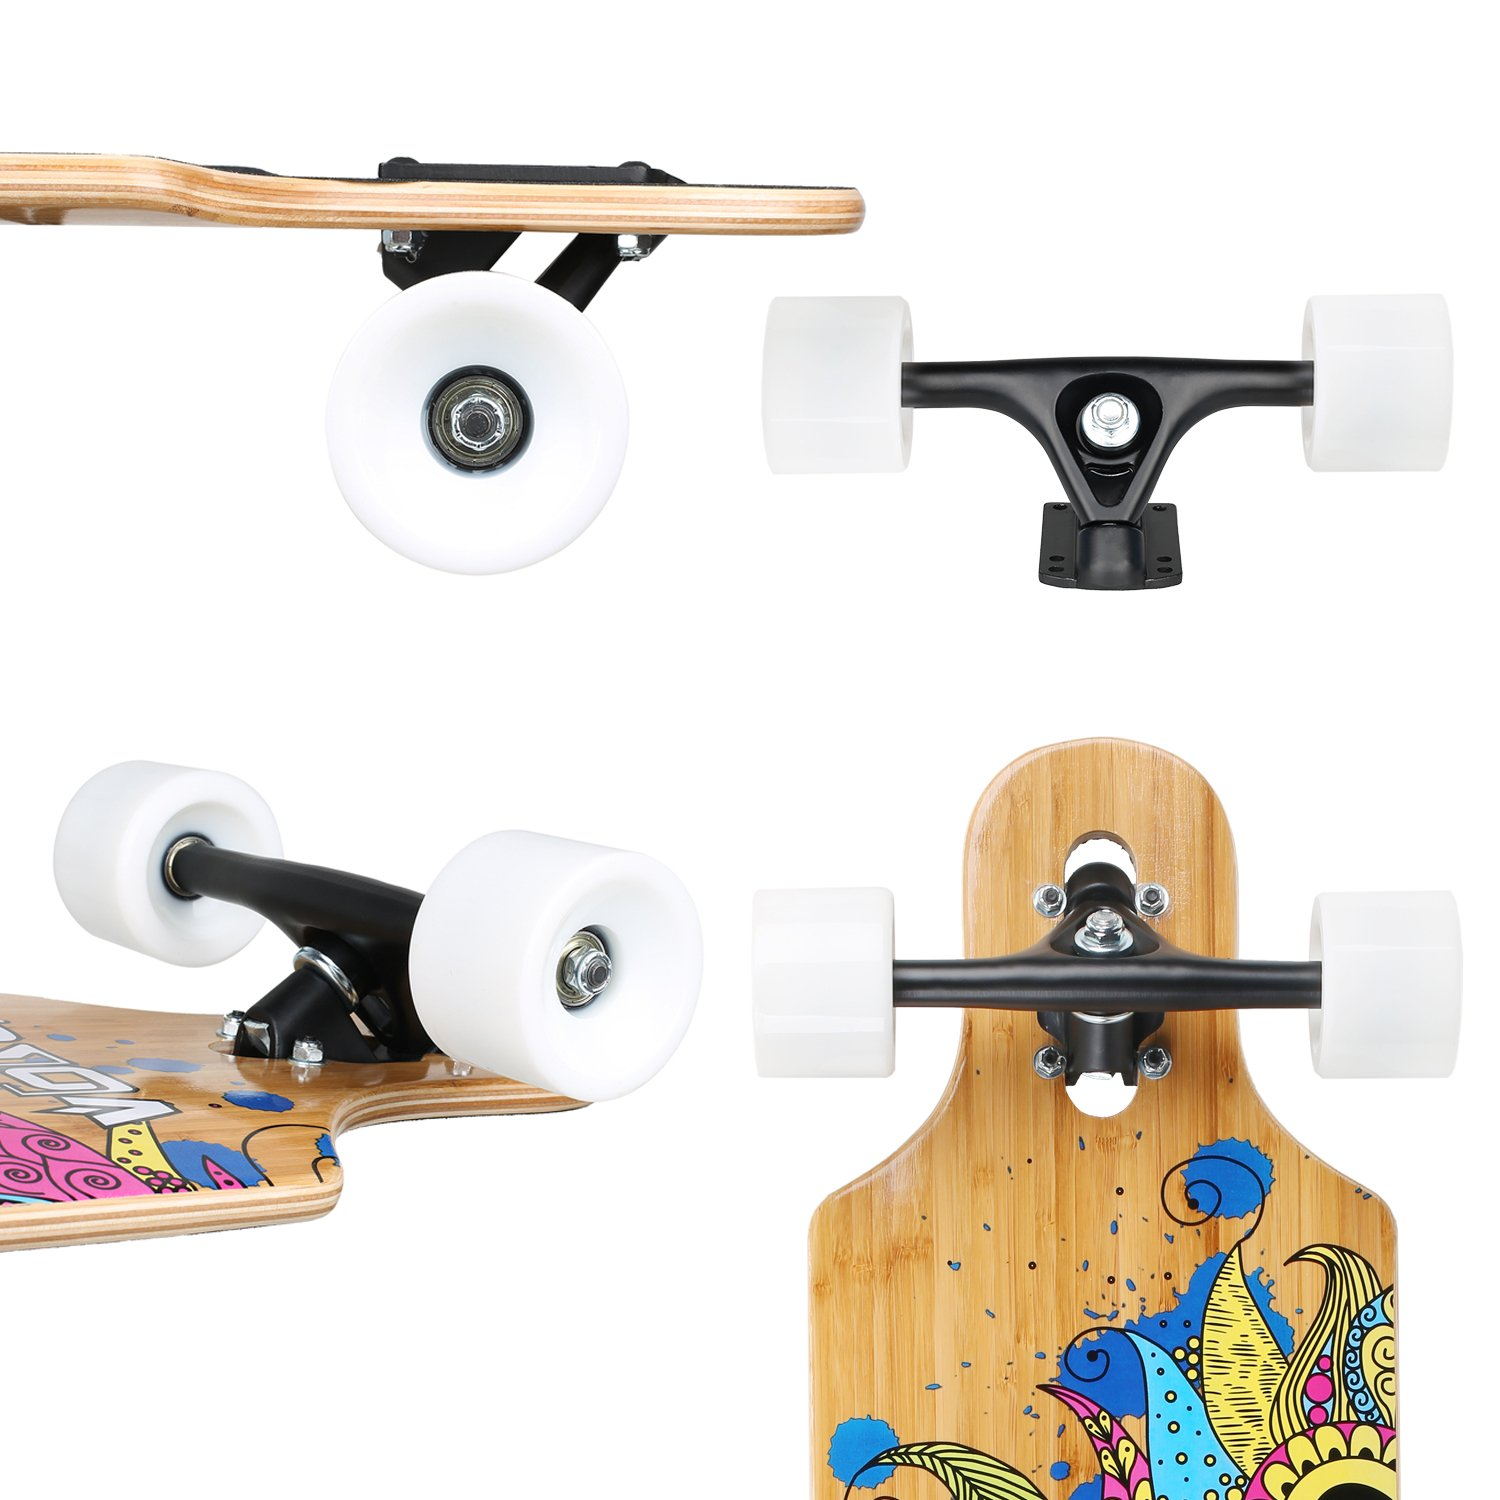 VOKUL Complete Longboard Skateboard Cruiser with 7-Ply Maple Wood and 1 Layer Bamboo Deck for Kids Youth Adults